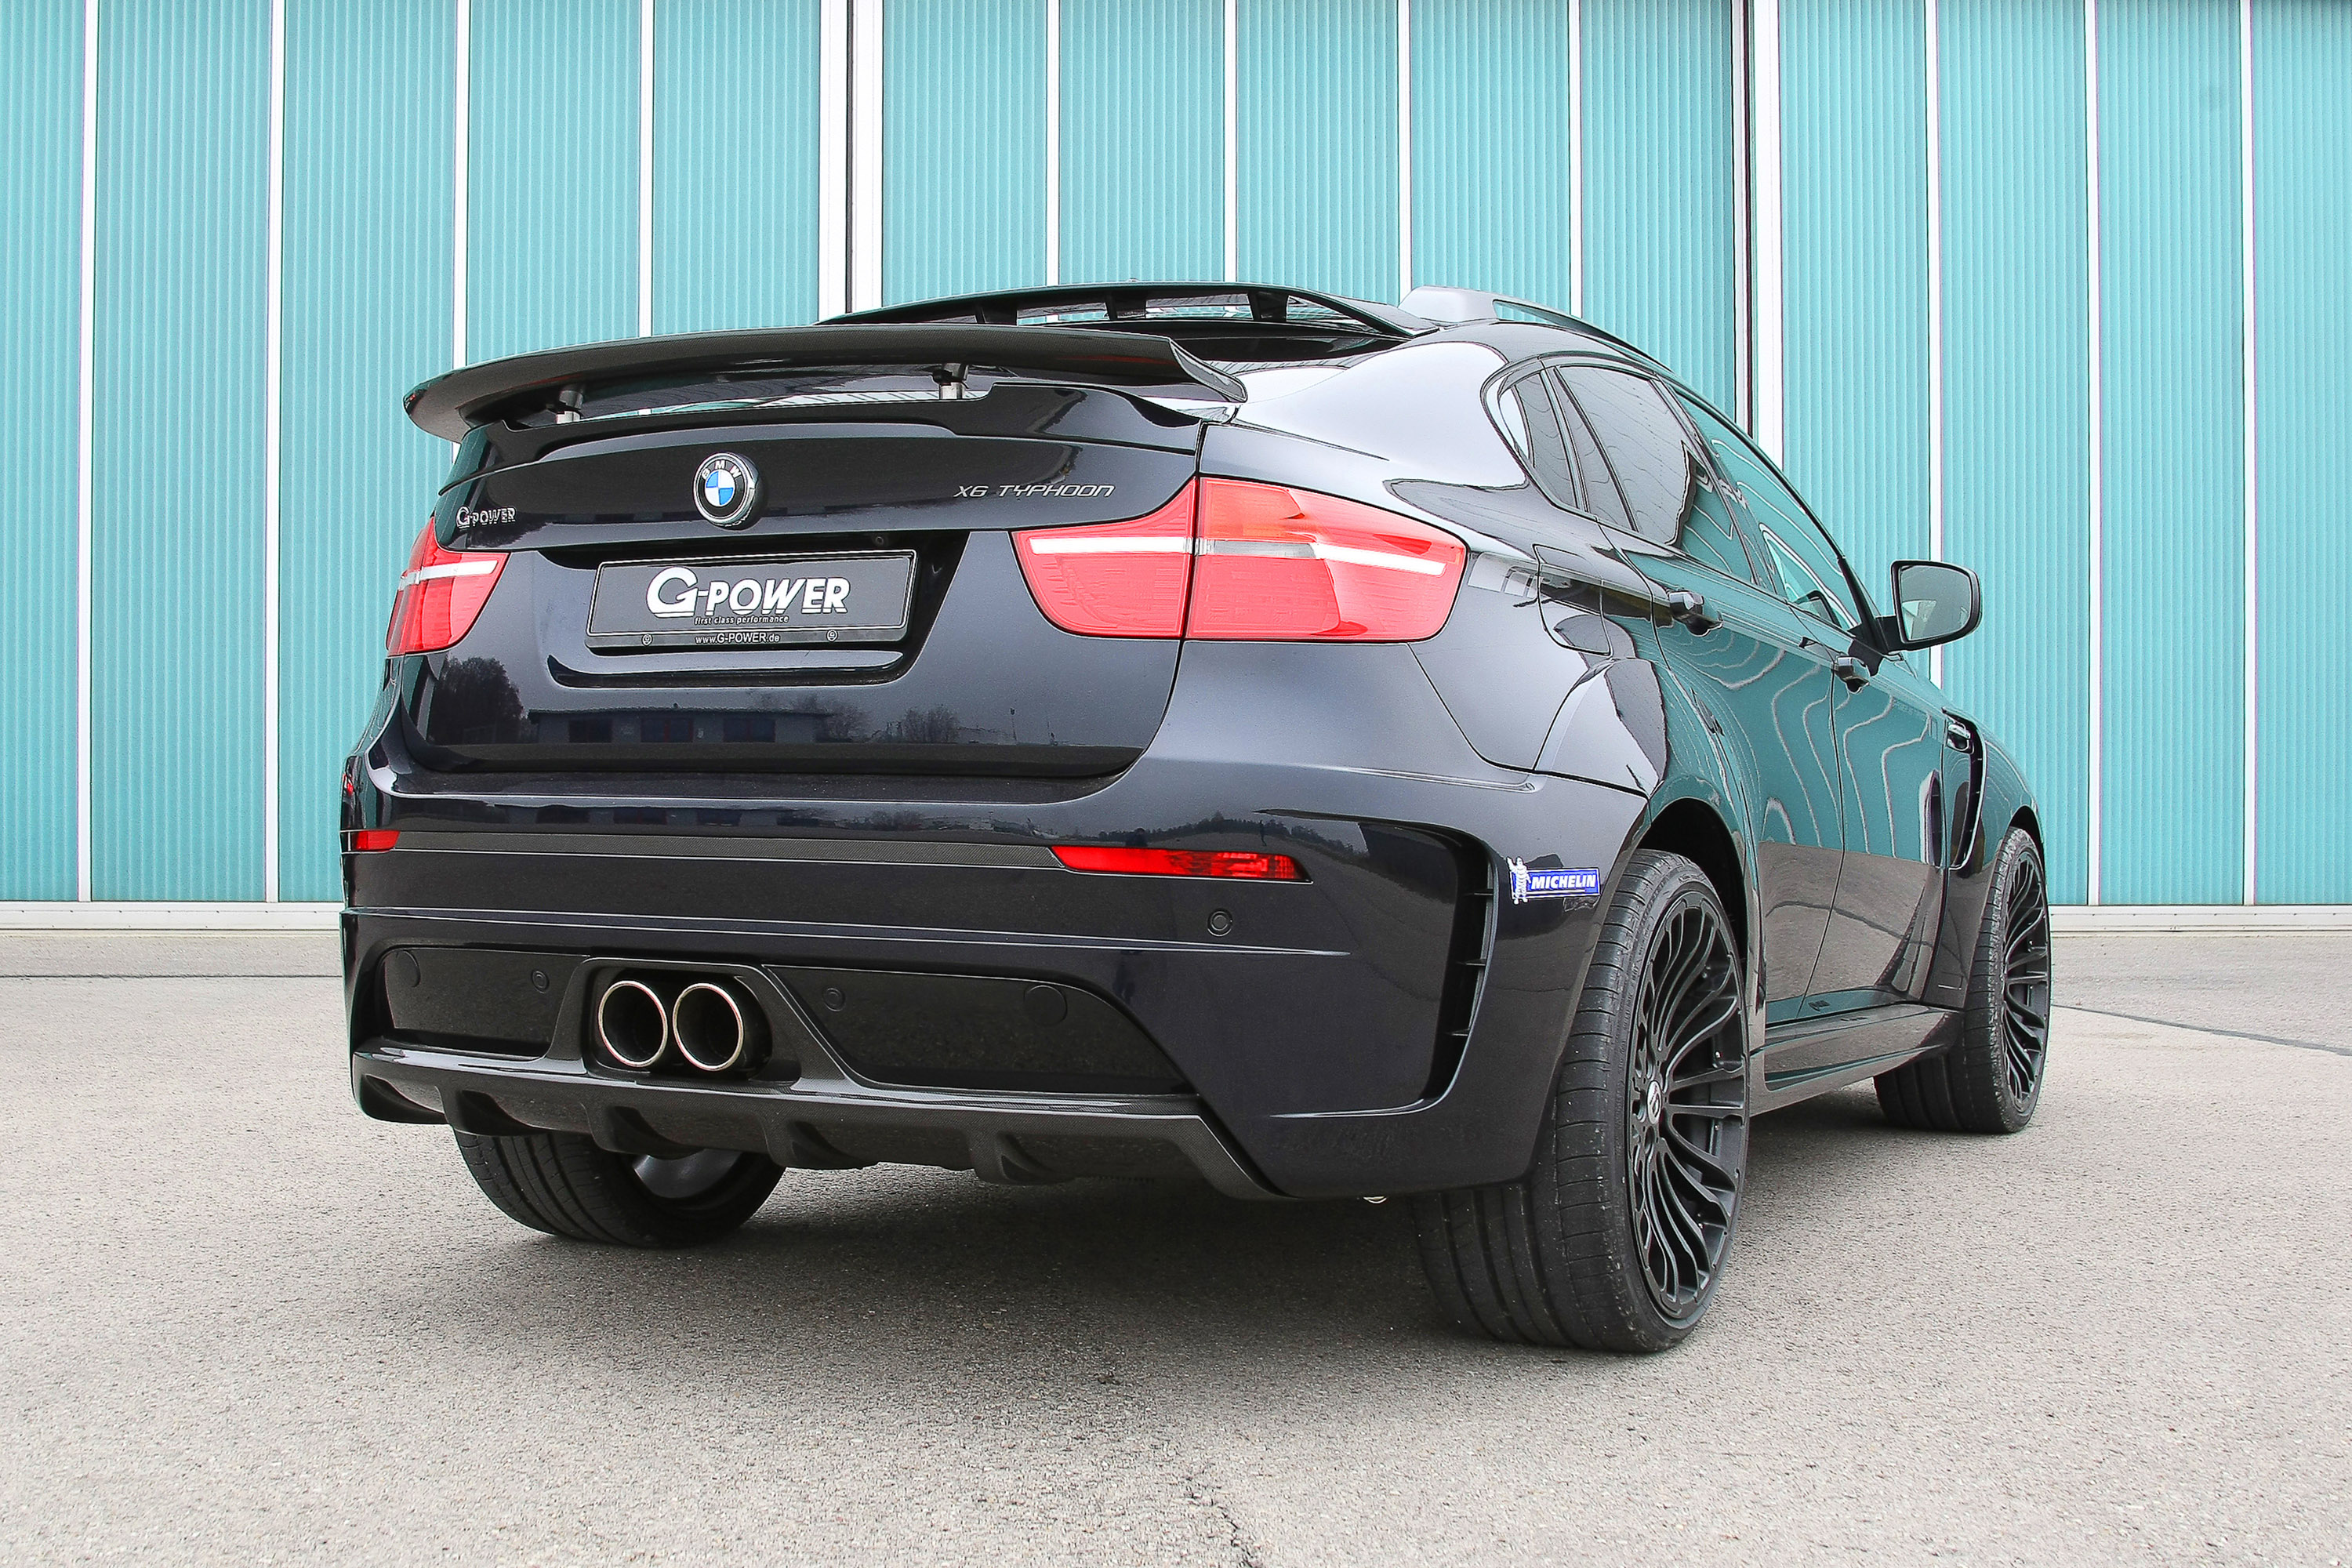 g power bmw x6 m typhoon wide body. Black Bedroom Furniture Sets. Home Design Ideas